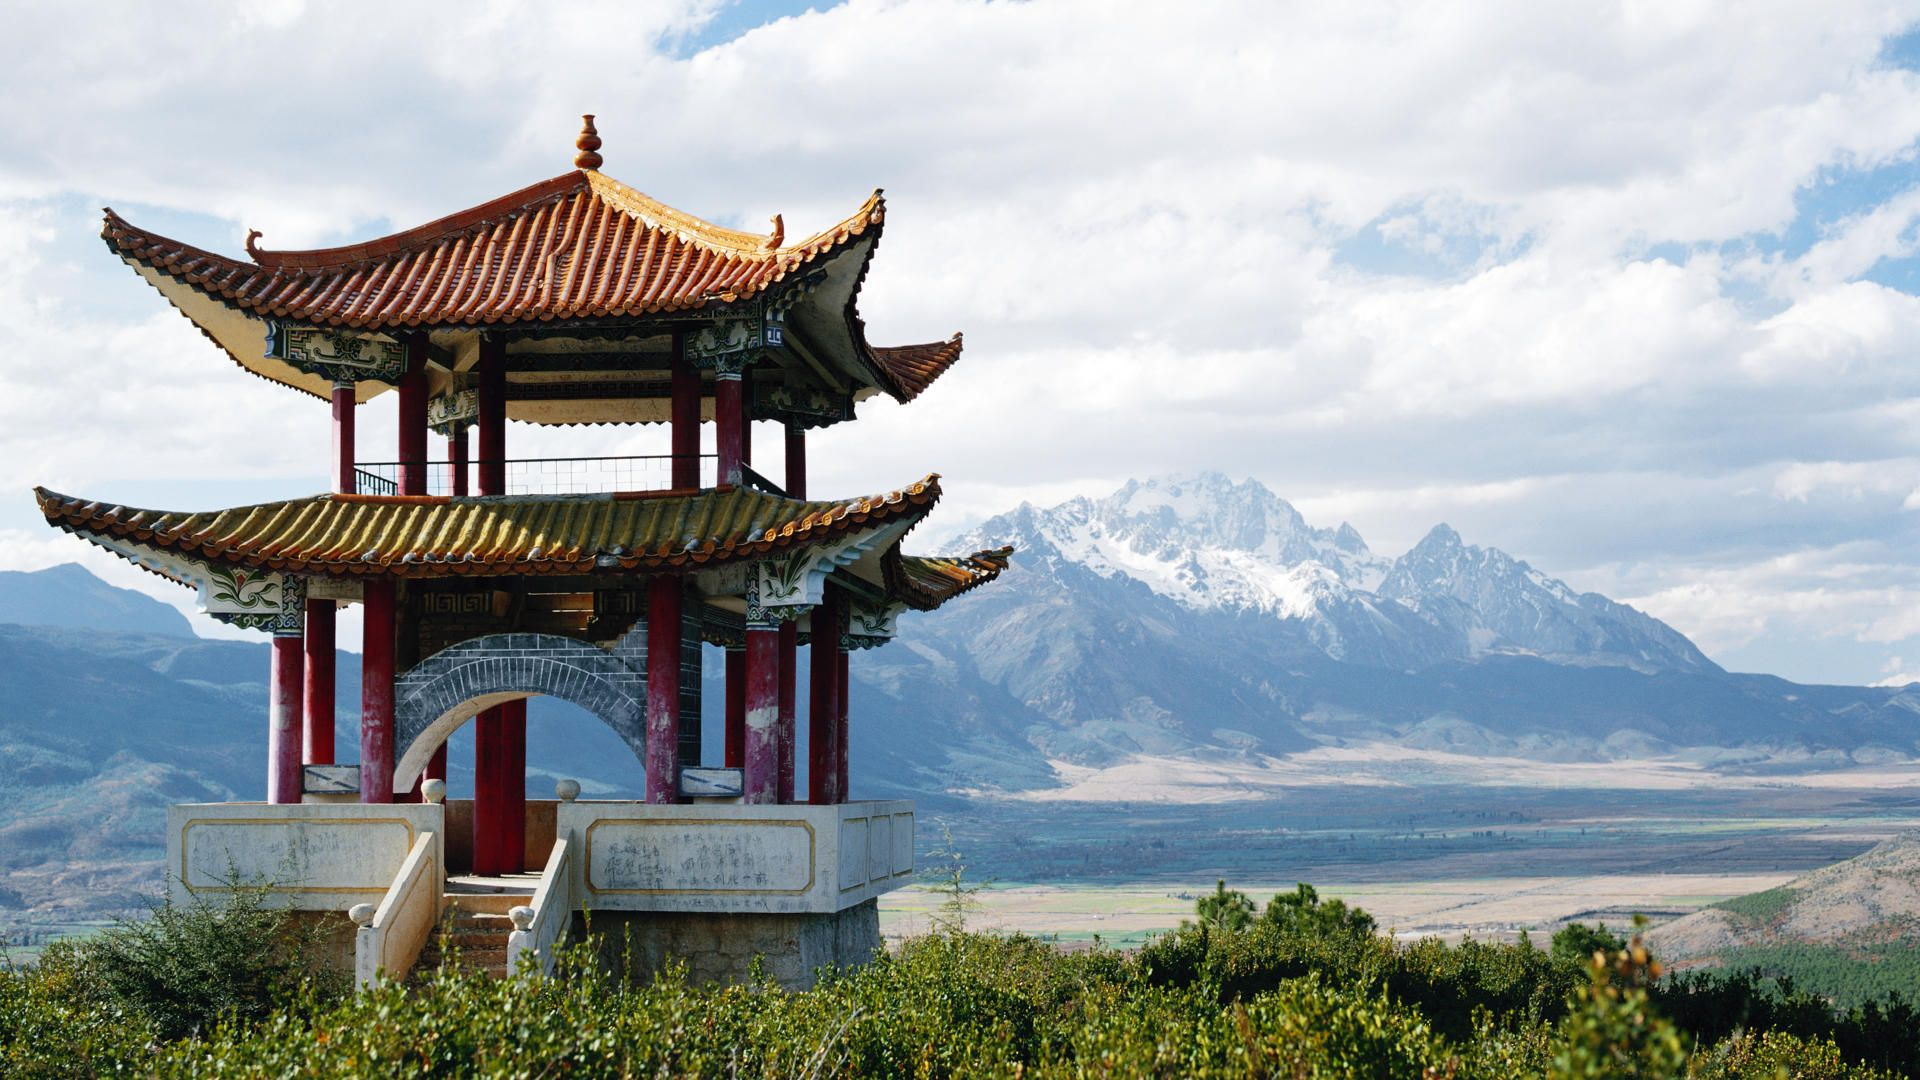 tibet pictures - yahoo image search results | living tibetan culture